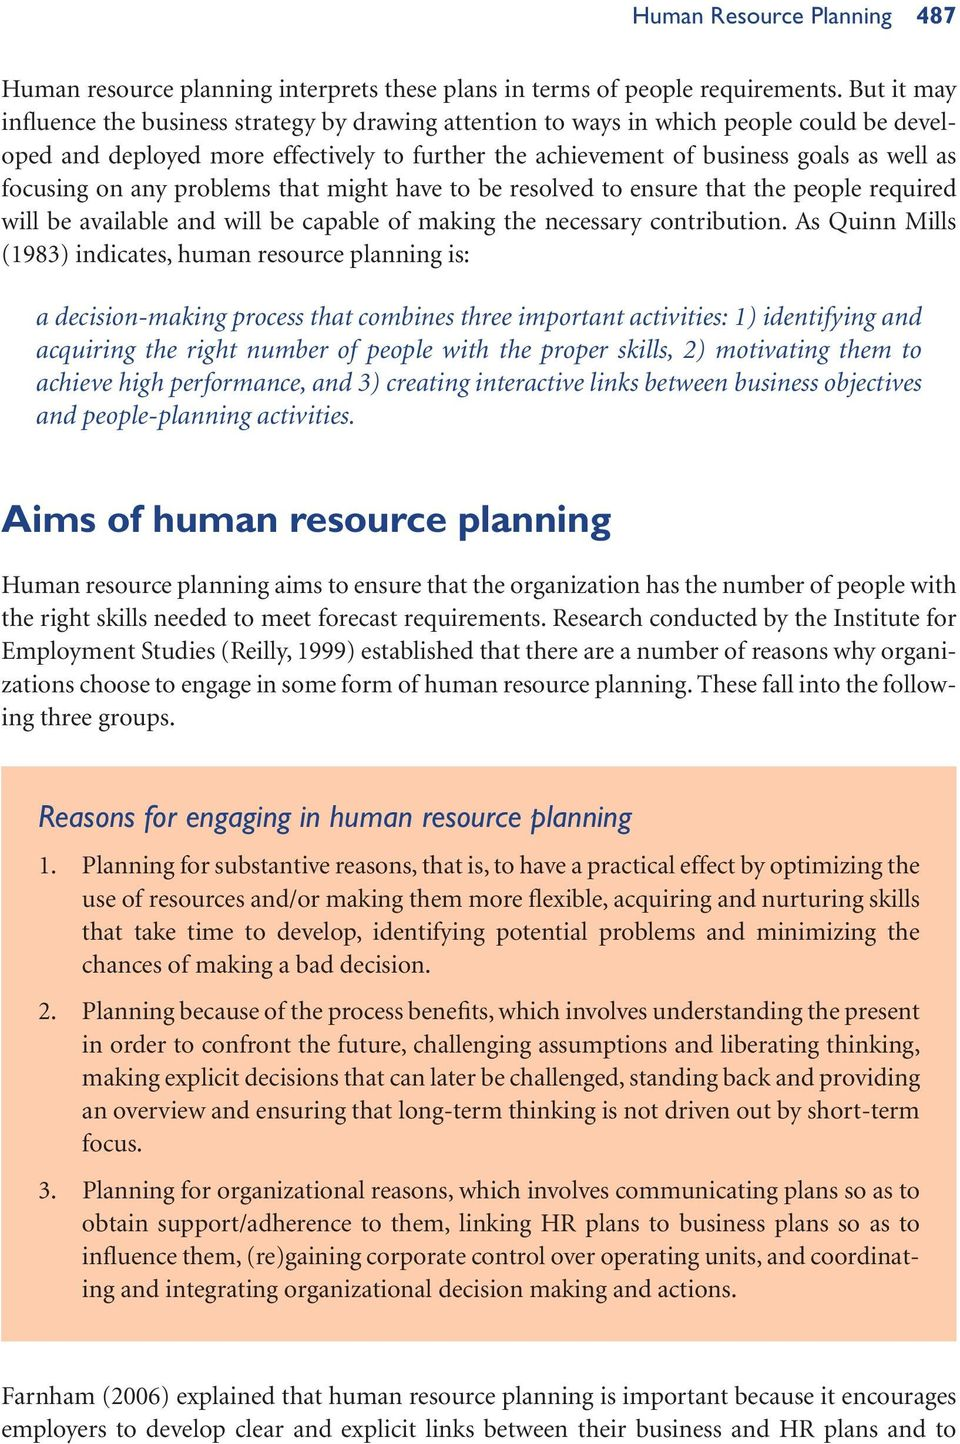 why human resource planning is important to an organisation